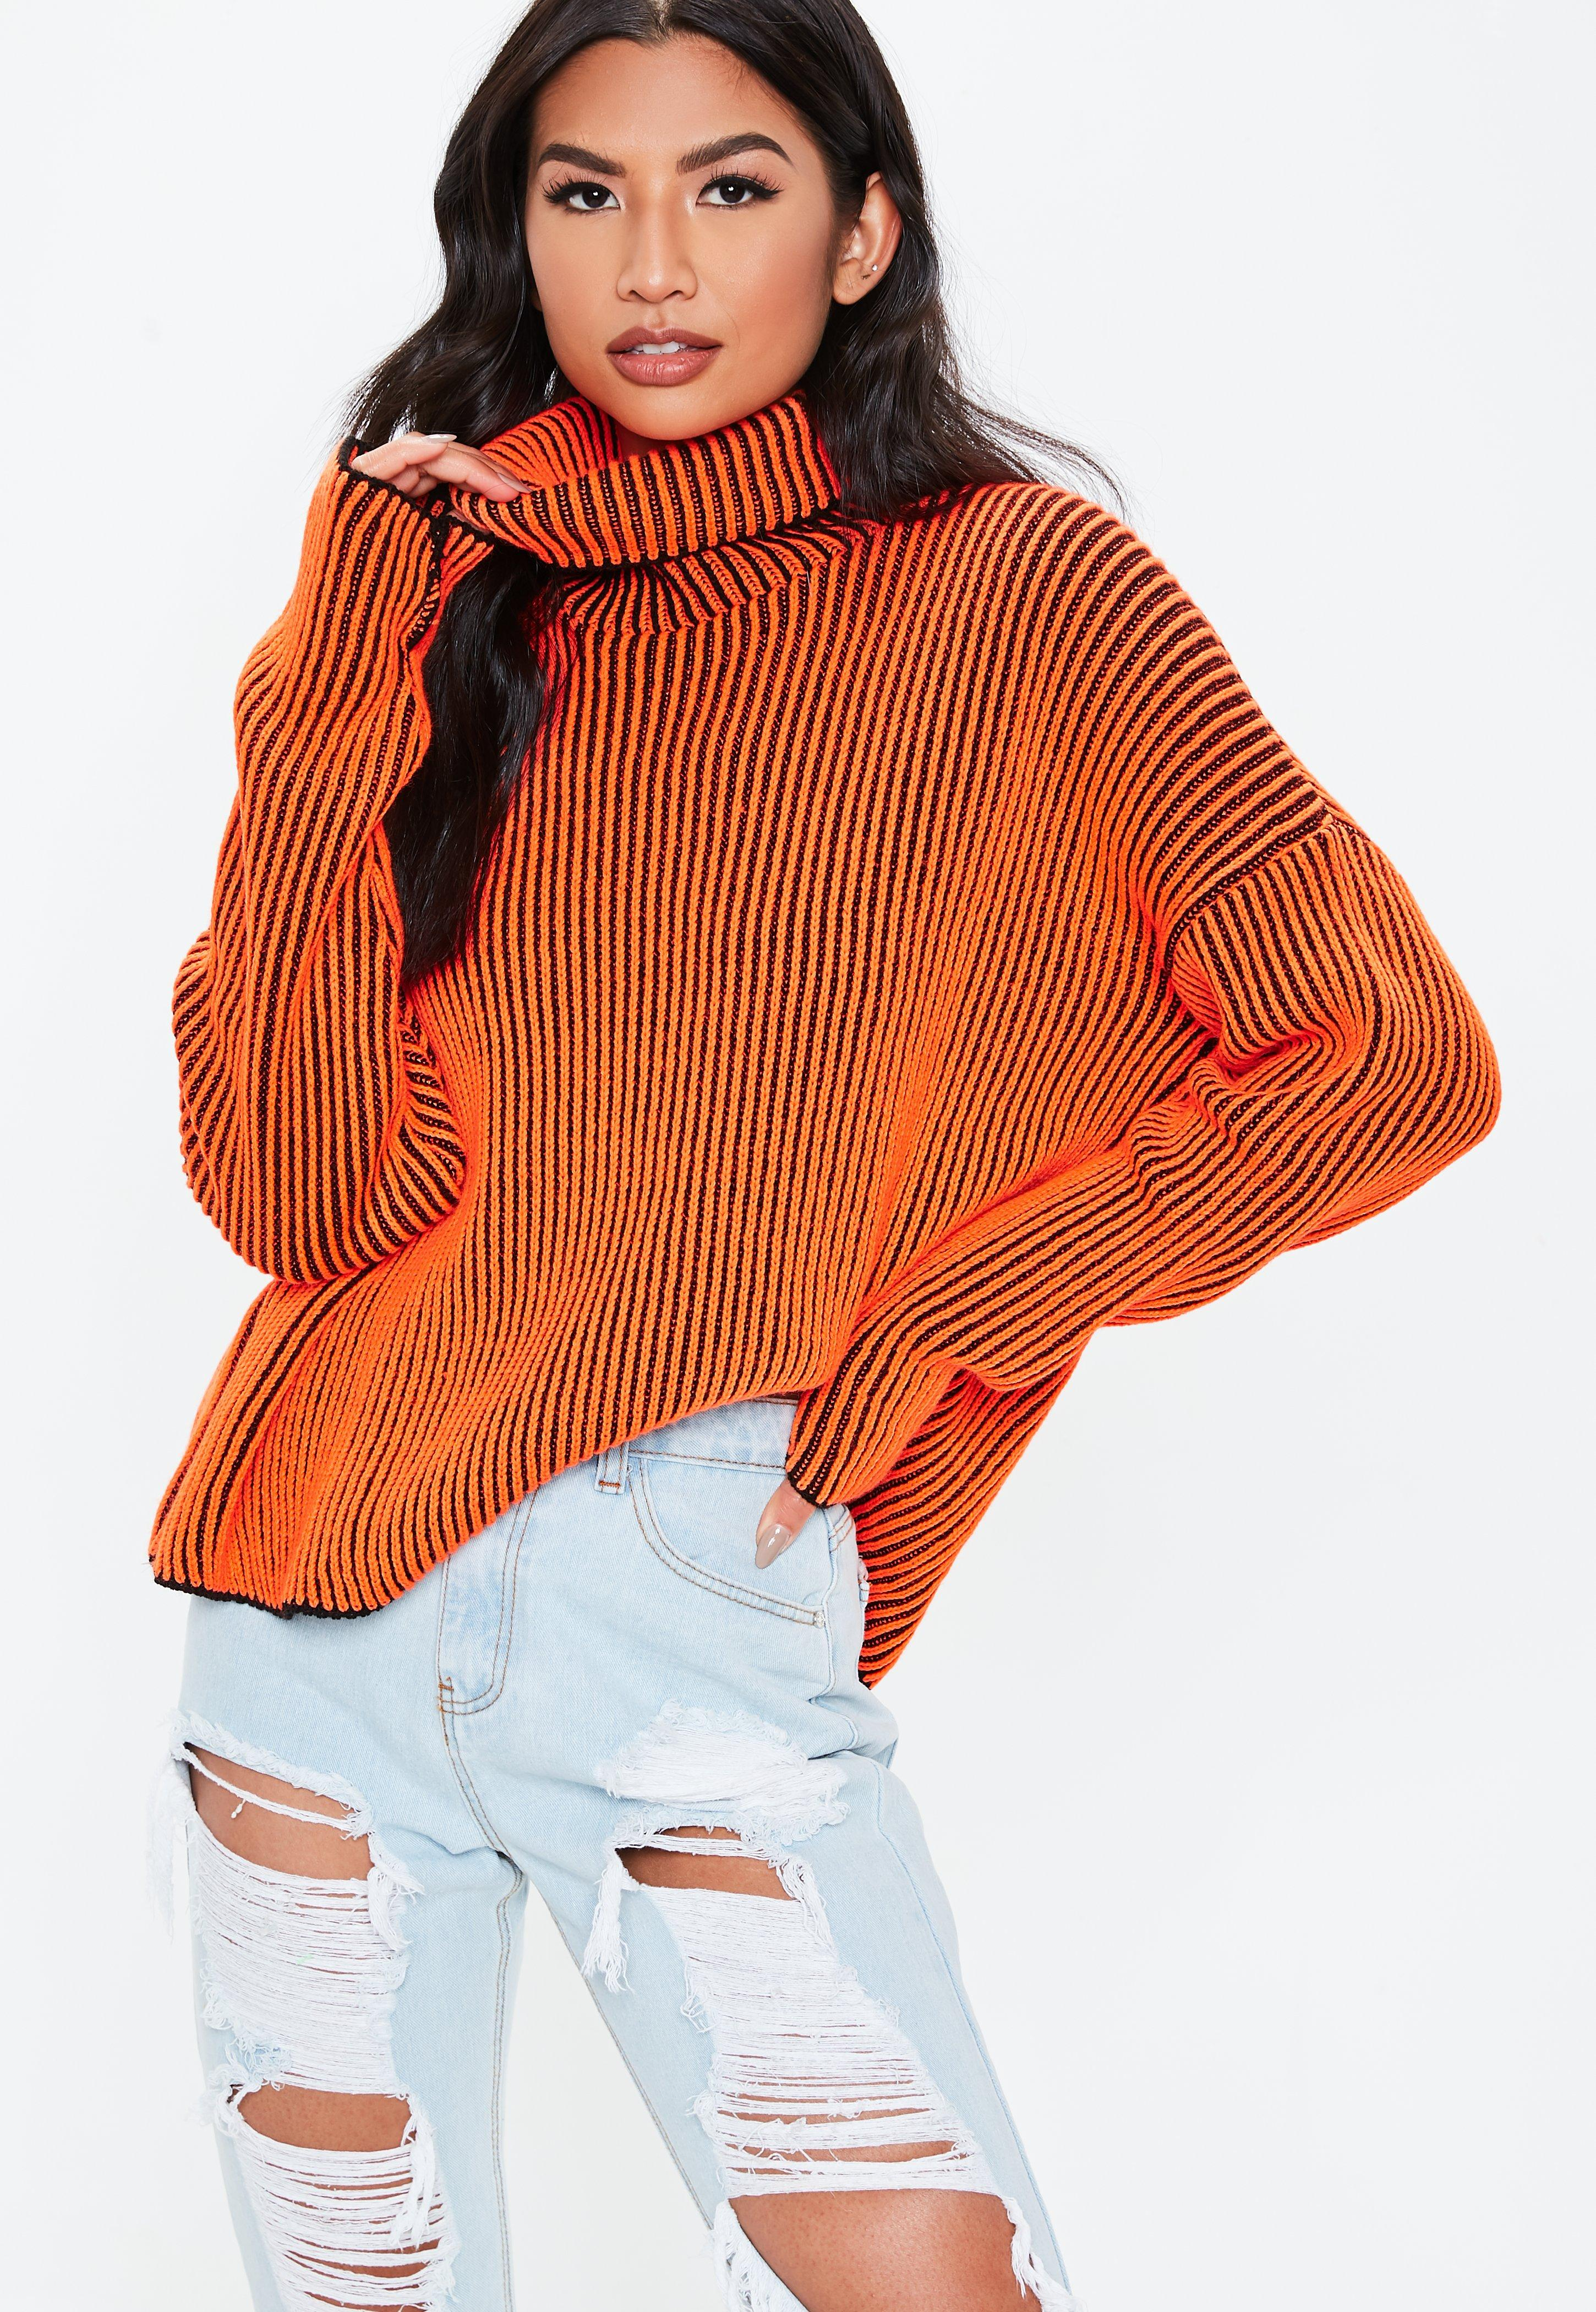 ee56aa0e982 Knitwear - Women s Knitted Clothes Online